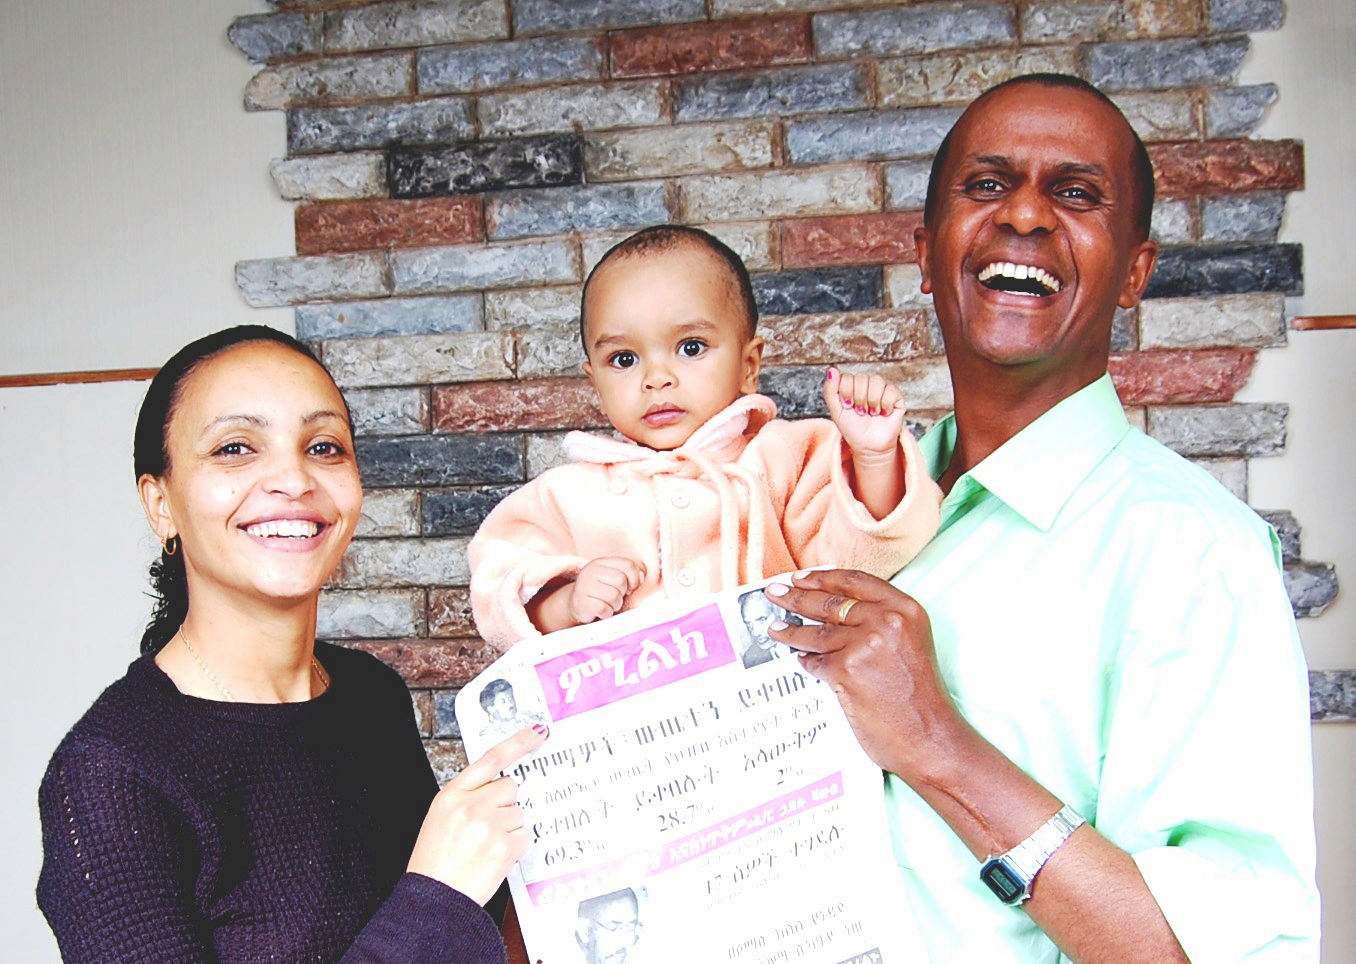 Ethiopia: Eskinder's release must herald a new dawn of respect for human rights